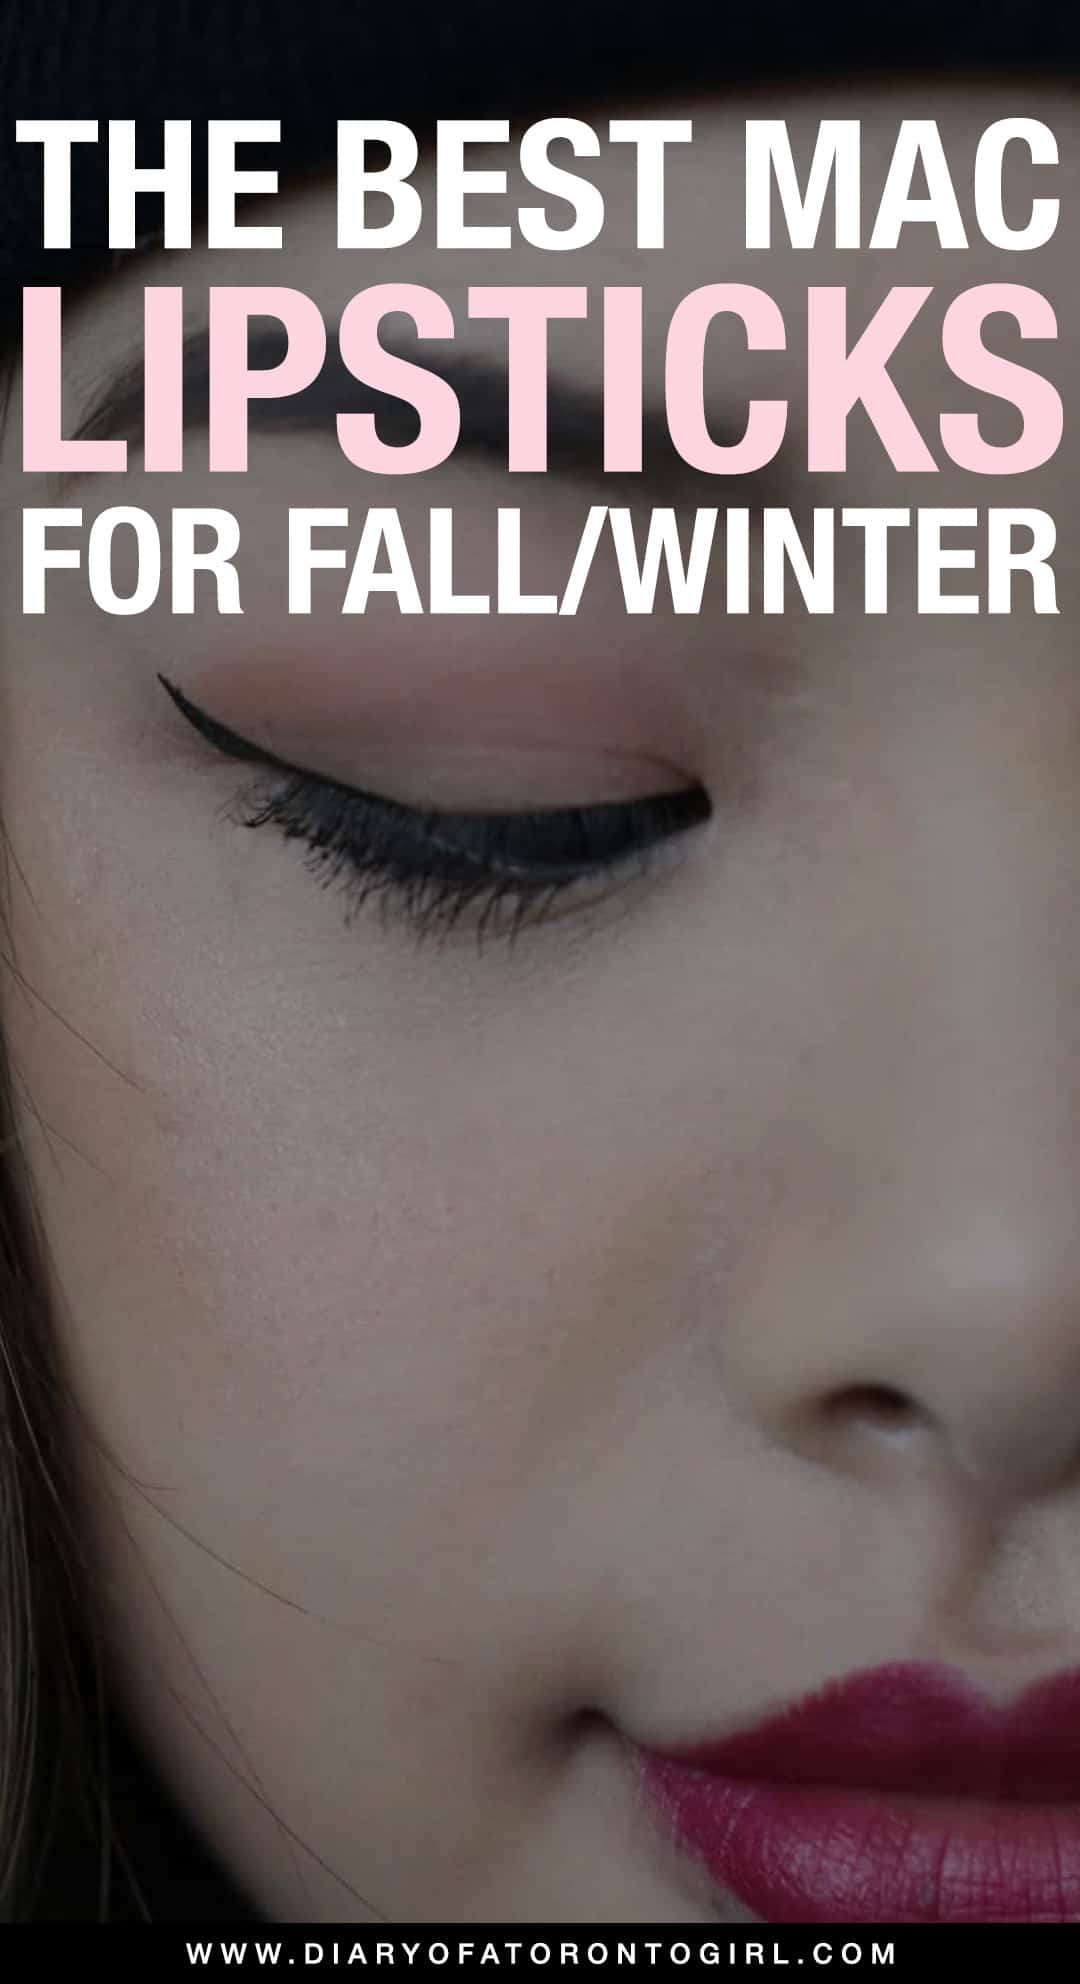 The best MAC lipsticks for the fall and winter seasons! From dark and bold to festive and sparkly, these are my fave MAC lipsticks for the colder months.